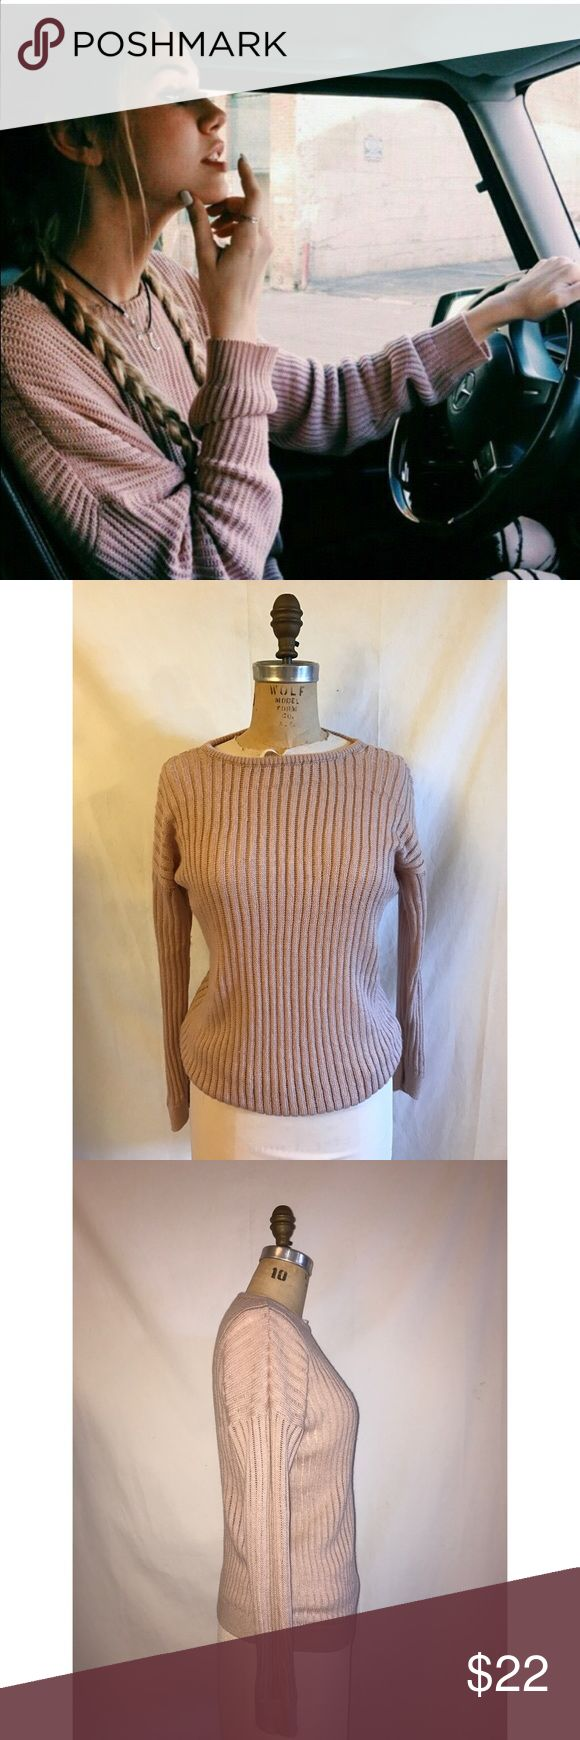 Brandy Melville sweater Blush pink brandy Melville sweater. Excellent condition. Should fit a small-medium even though it's a one size. Brandy Melville Sweaters